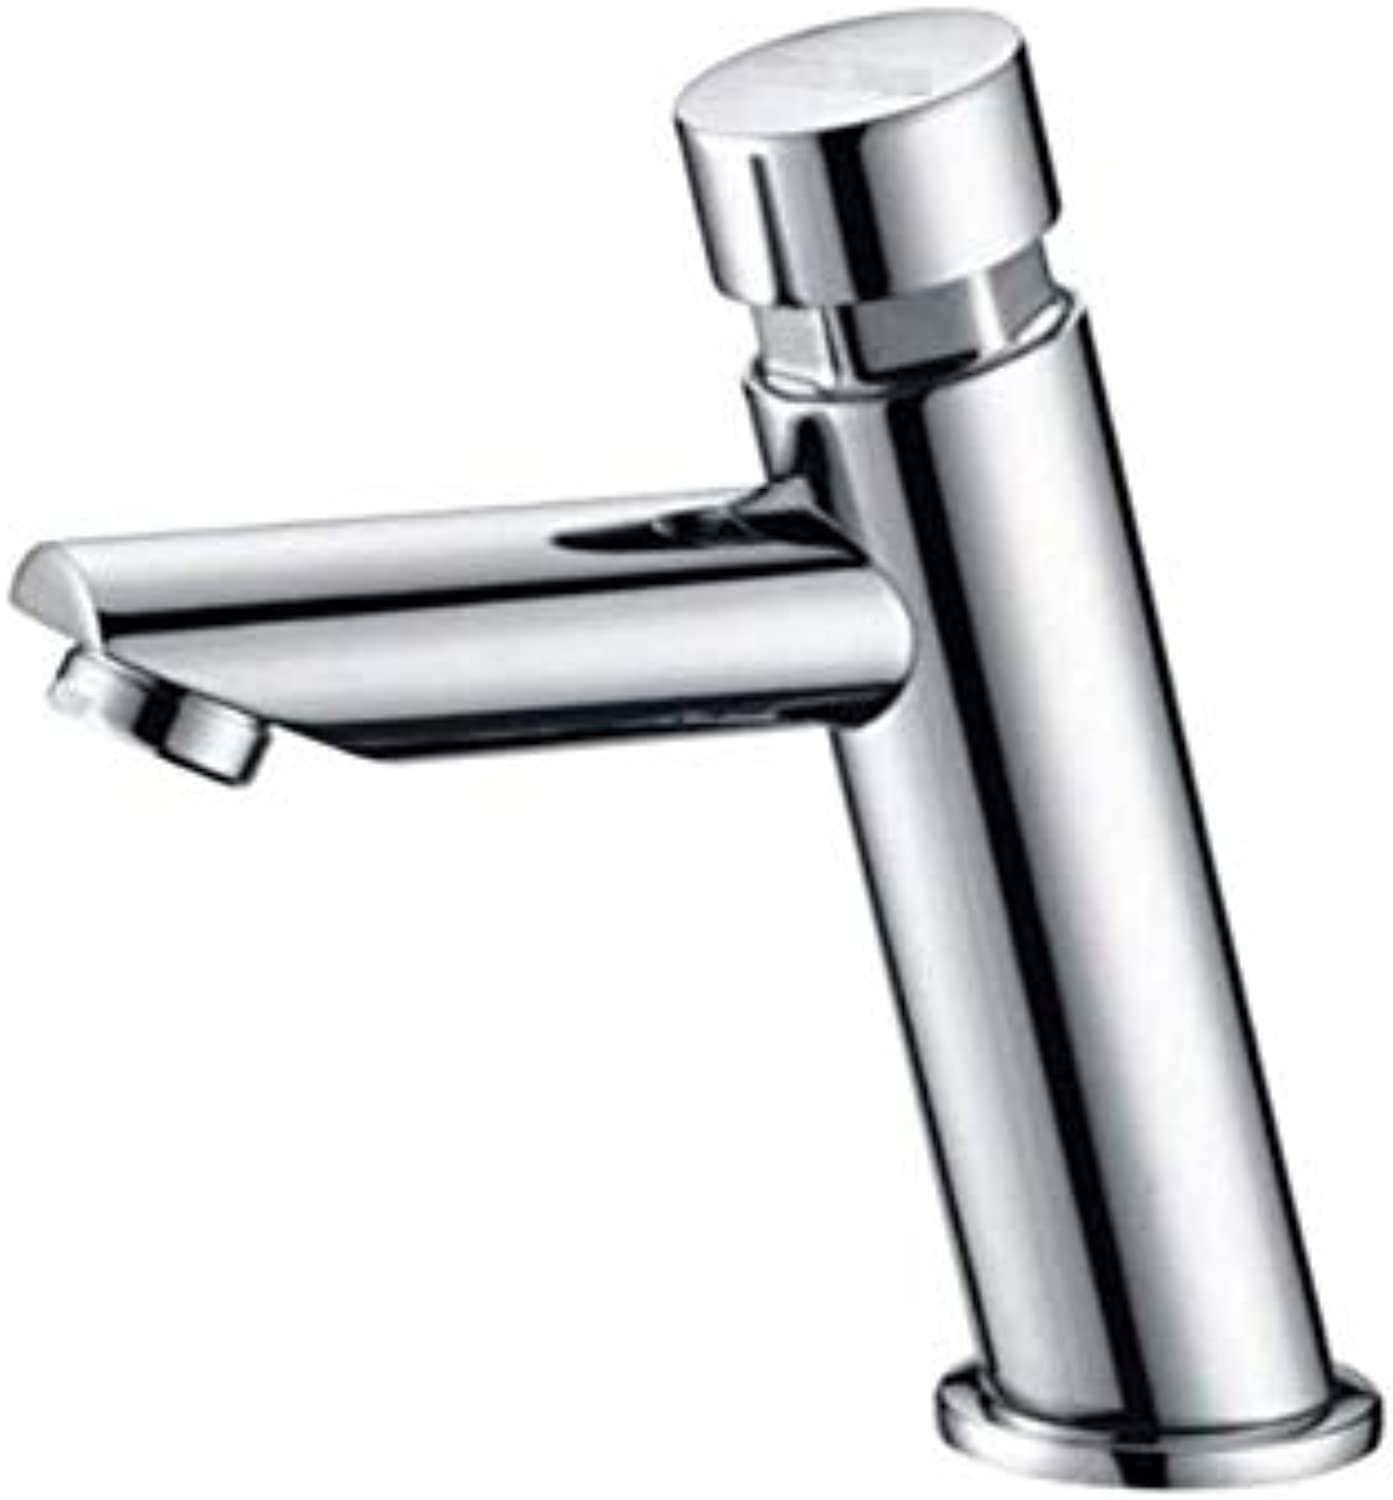 Taps Kitchen Sinktaps Mixer Swivel Faucet Sink Basin Faucet Basin Single Cold Faucet Water-Saving